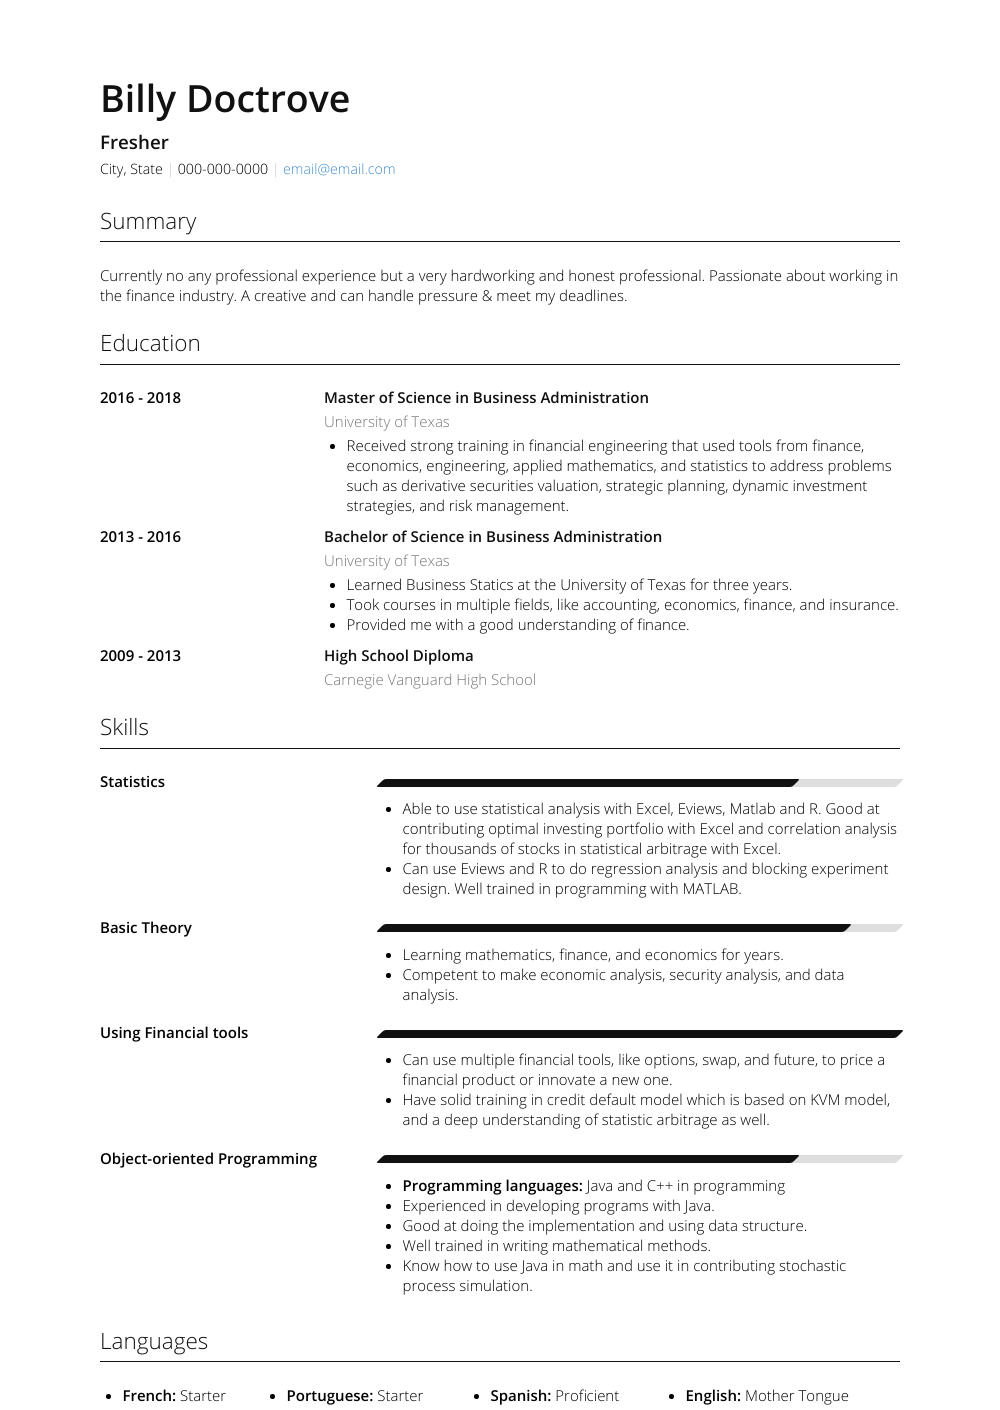 Fresher Resume Sample and Template